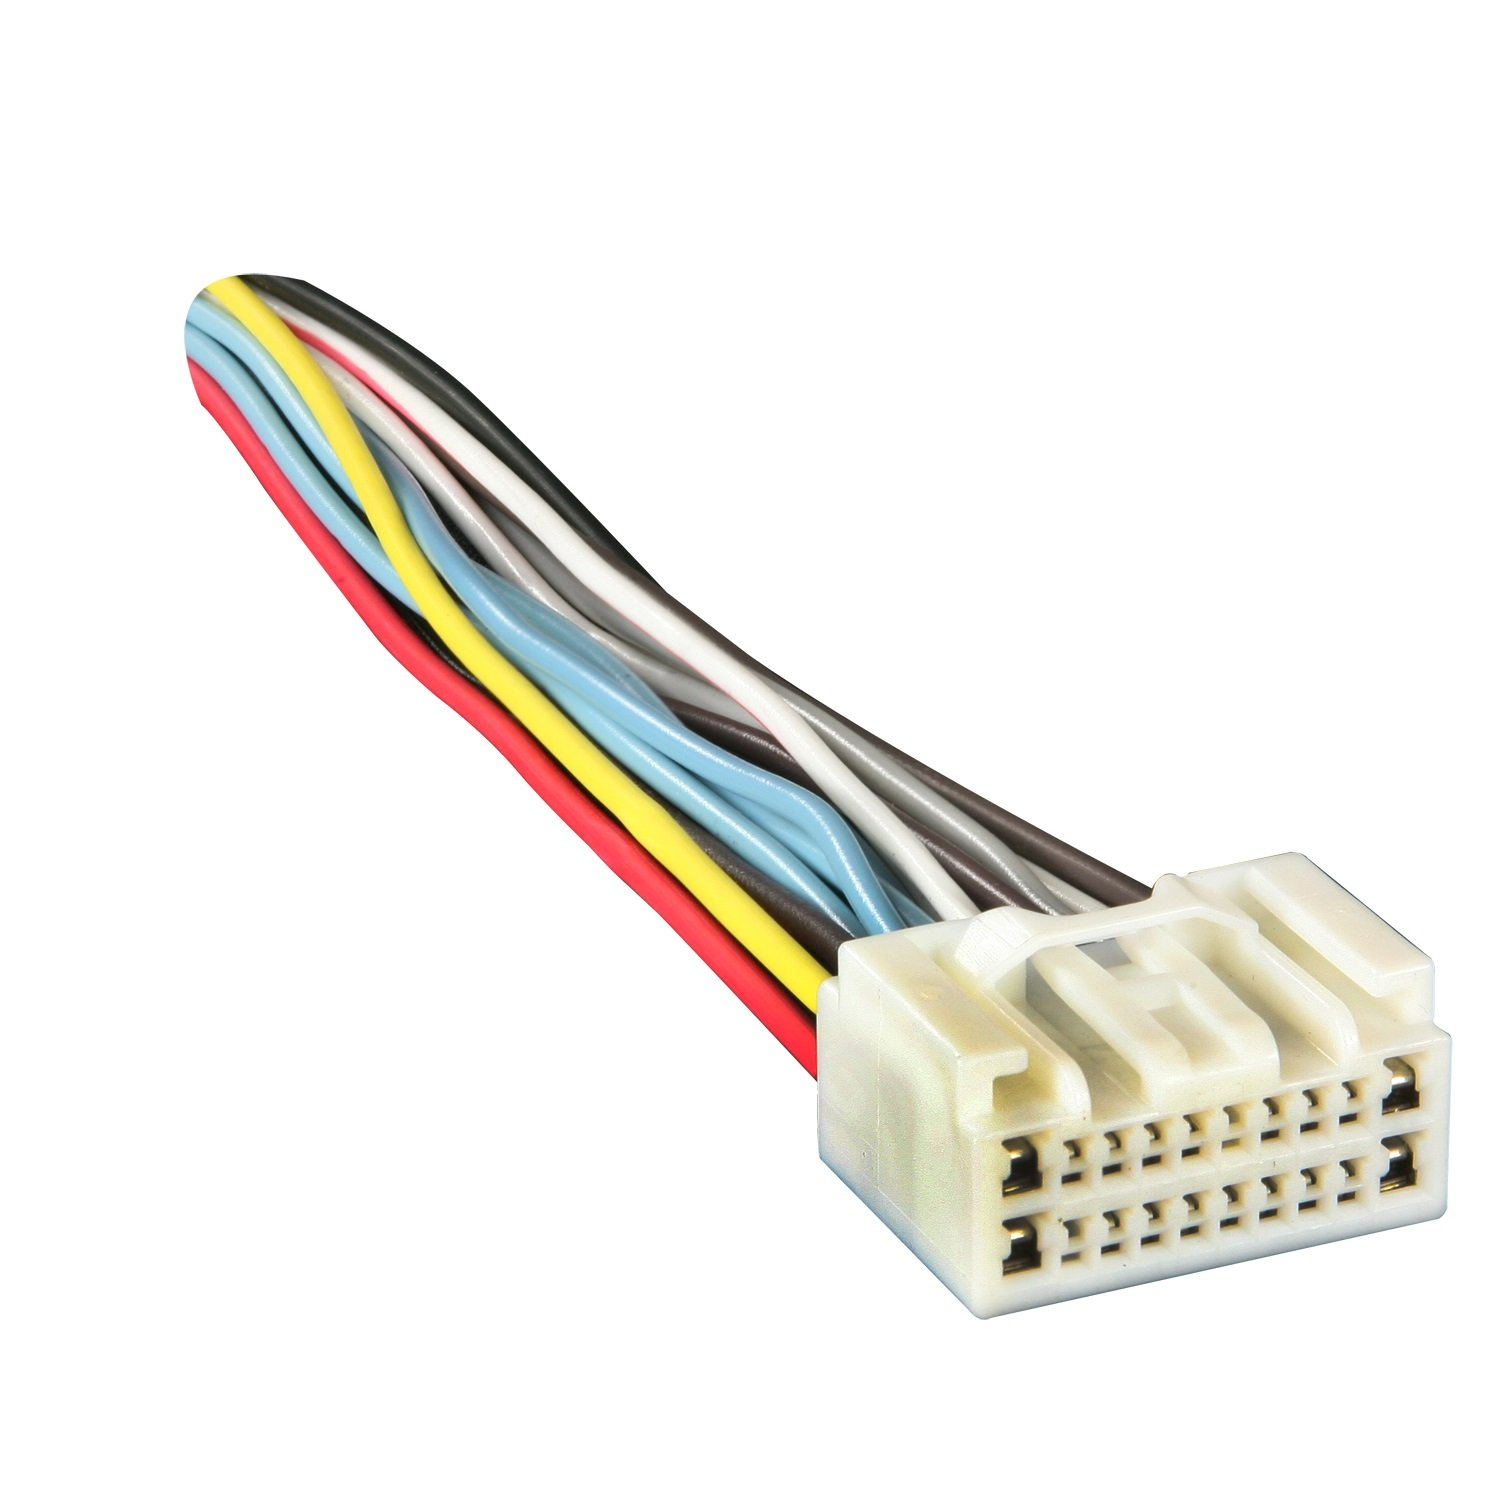 61k6eVpKLJL._SL1500_ amazon com metra 71 8113 reverse wiring harness for select 2000 wiring harness best buy at gsmx.co